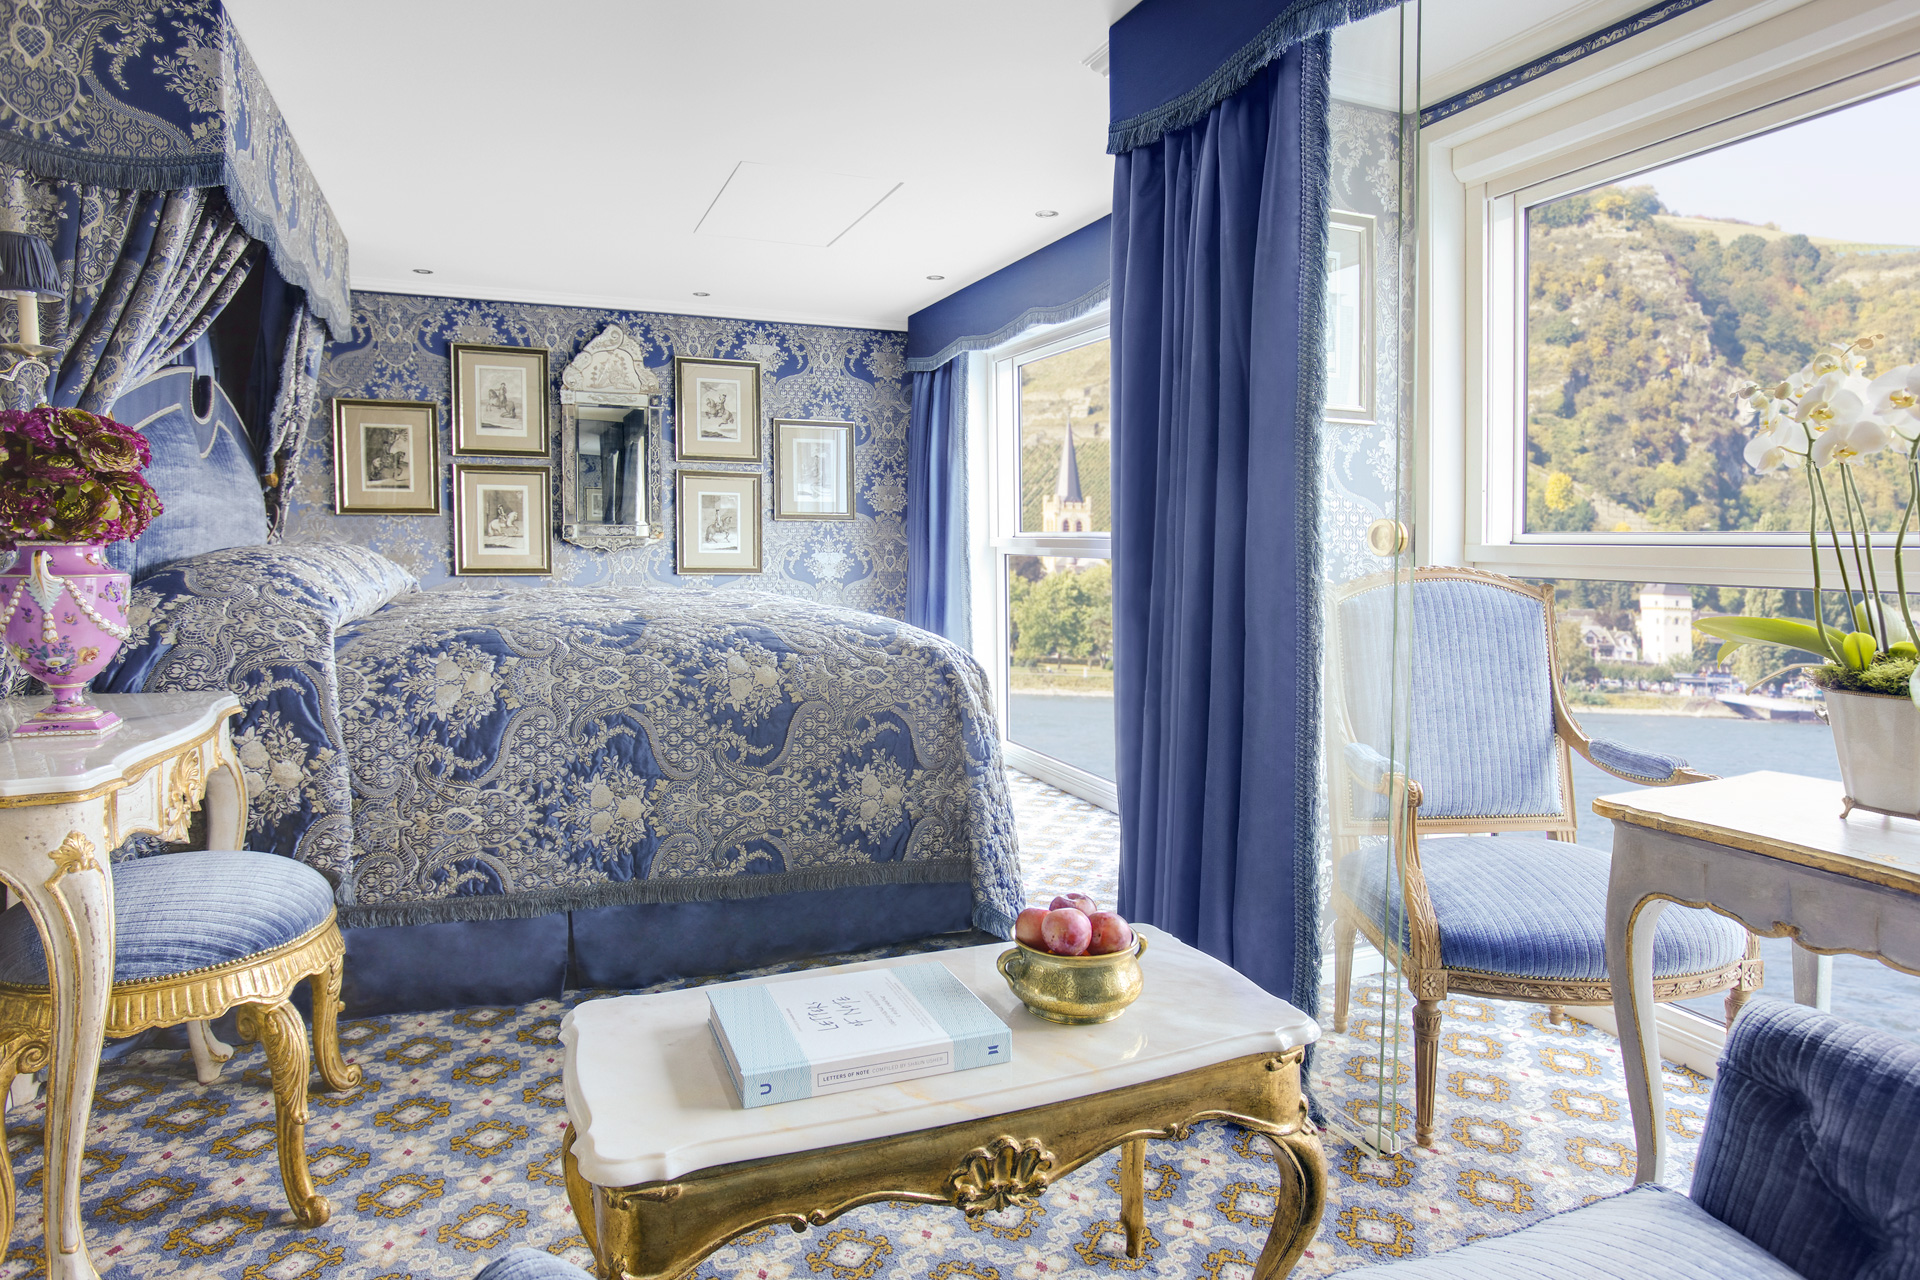 Each category of stateroom takes on a different palette and all have a canopied made-to-order Savoir bed, (acknowledged as the world's best), the finest monogrammed linen and marble bathrooms. Image courtesy of the Uniworld Boutique River Cruise Collection.